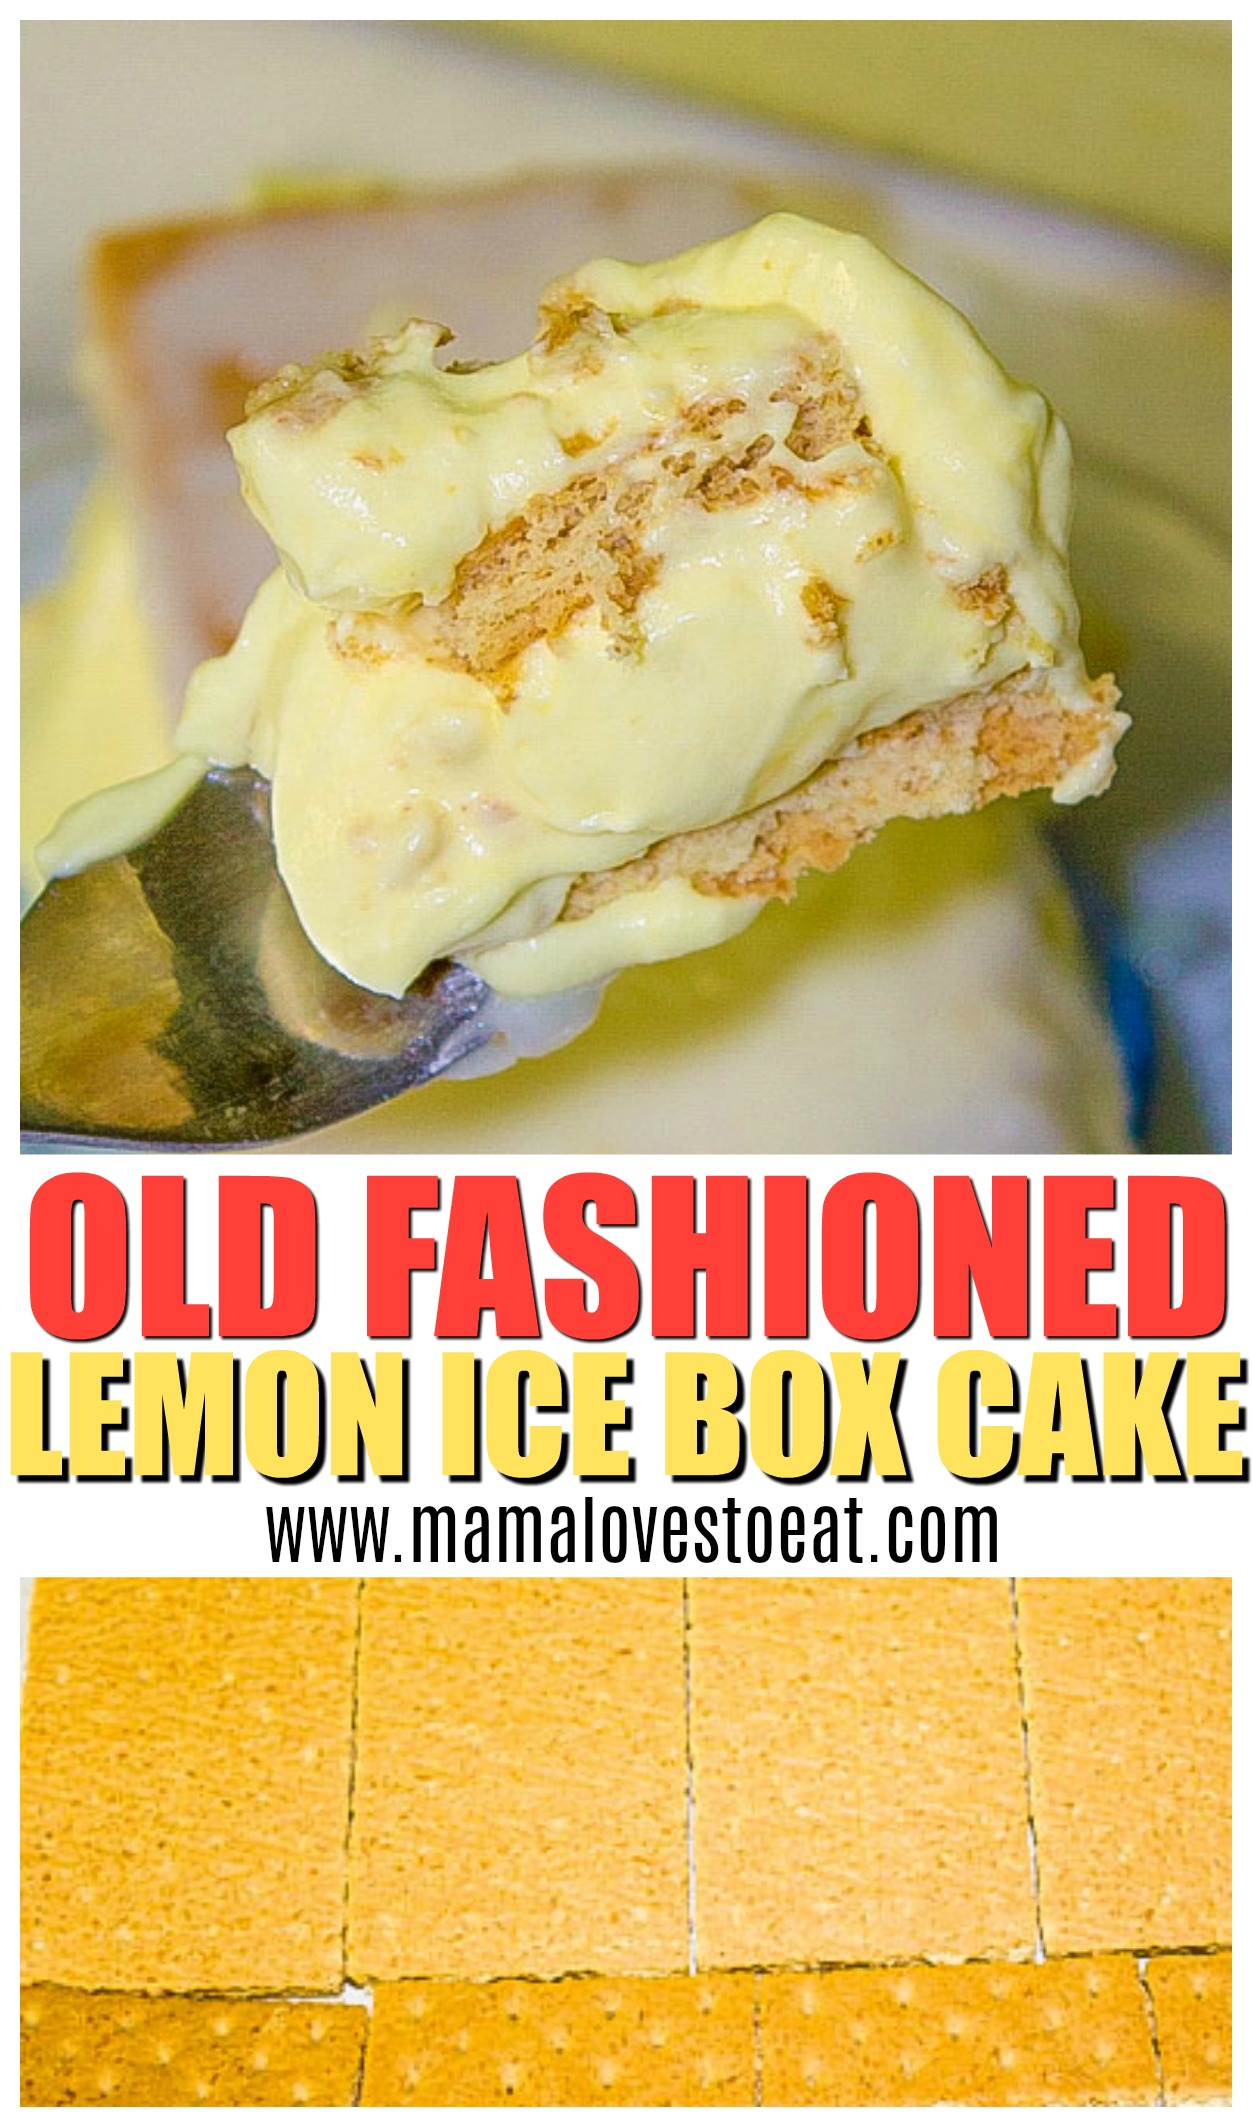 Love dessert? Lemon Icebox cake is a the perfect no bake dessert recipe. So good, you'll want to make it all the time. Perfect for parties or picnics.